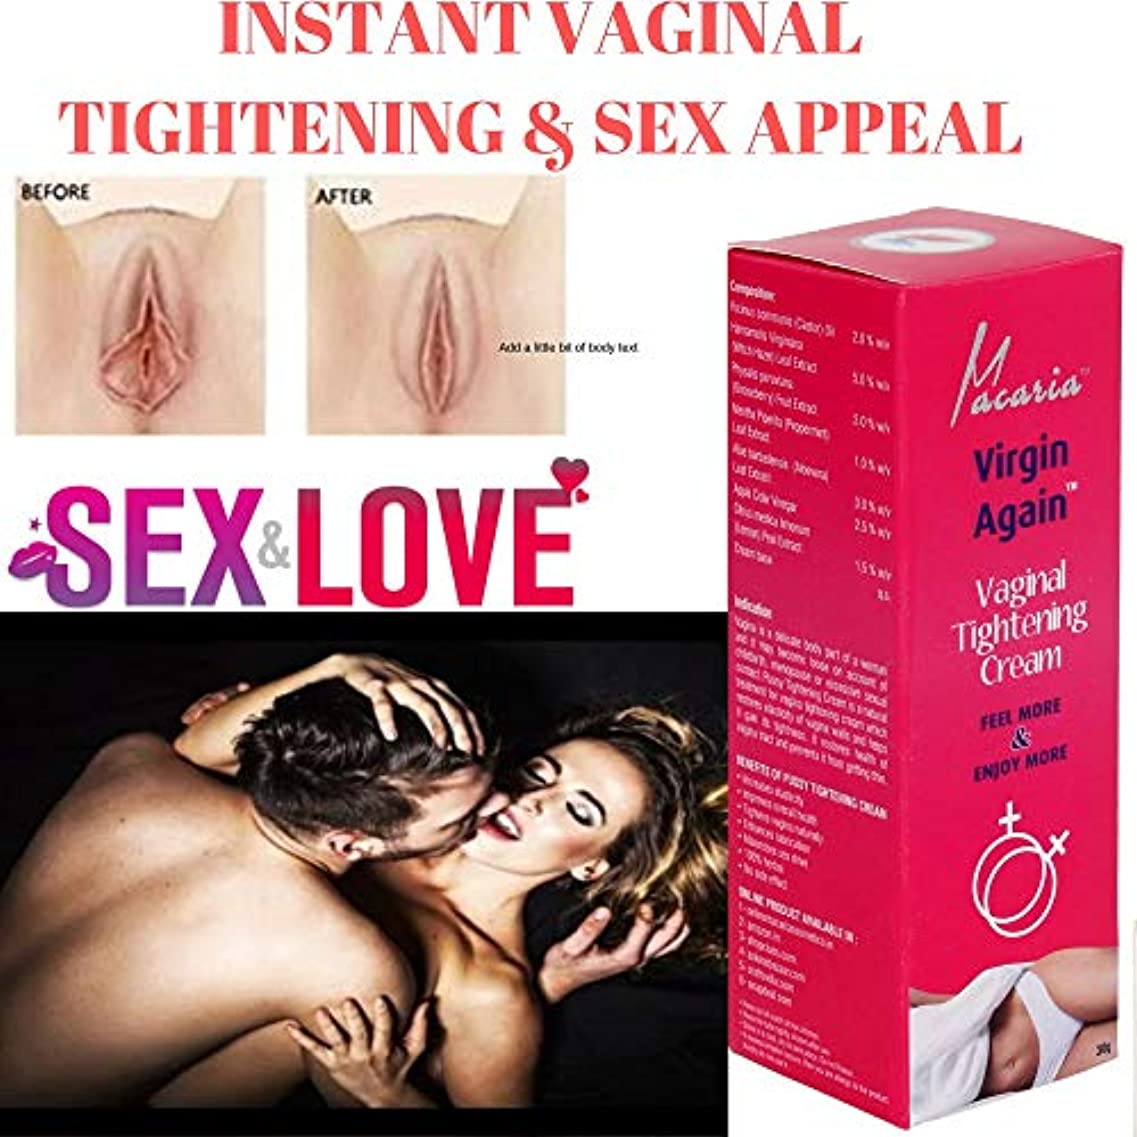 面チャペルツーリストVIRGIN AGAIN CREAM (VAGINAL VAGINA TIGHTENING CREAM GEL LOTION